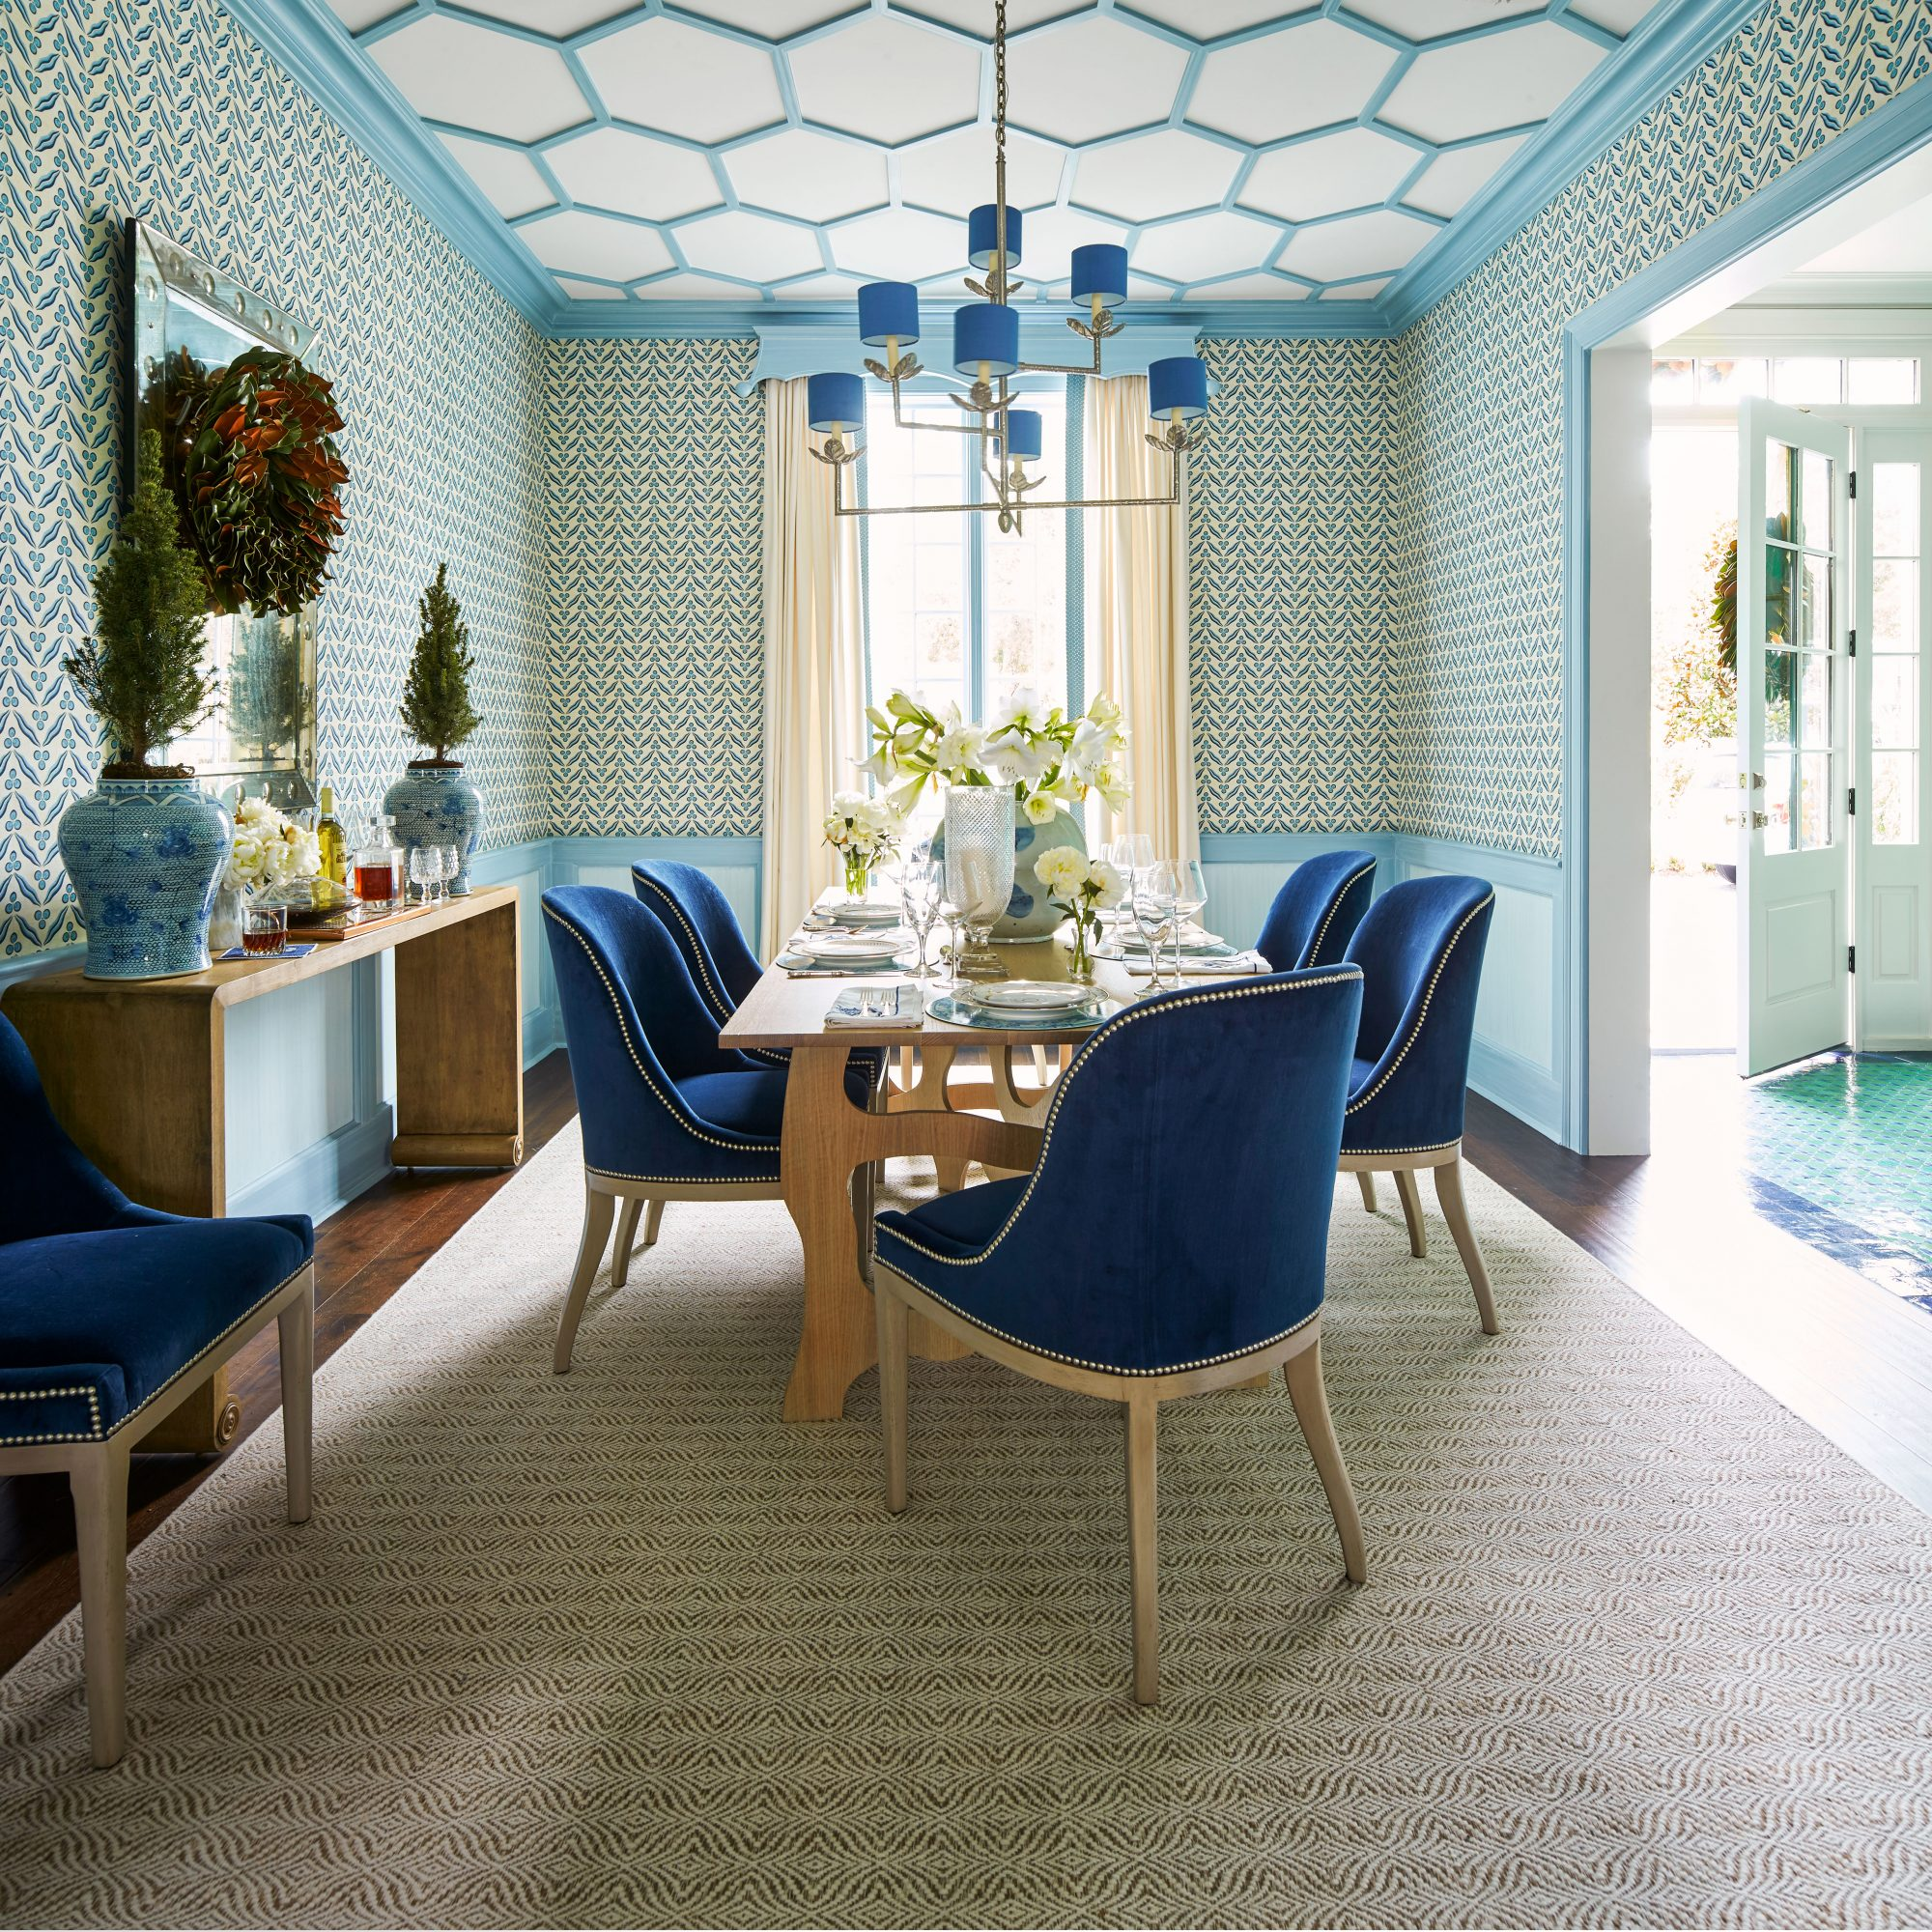 Andrew Howard Home Decorated for Christmas Blue and White Dining Room